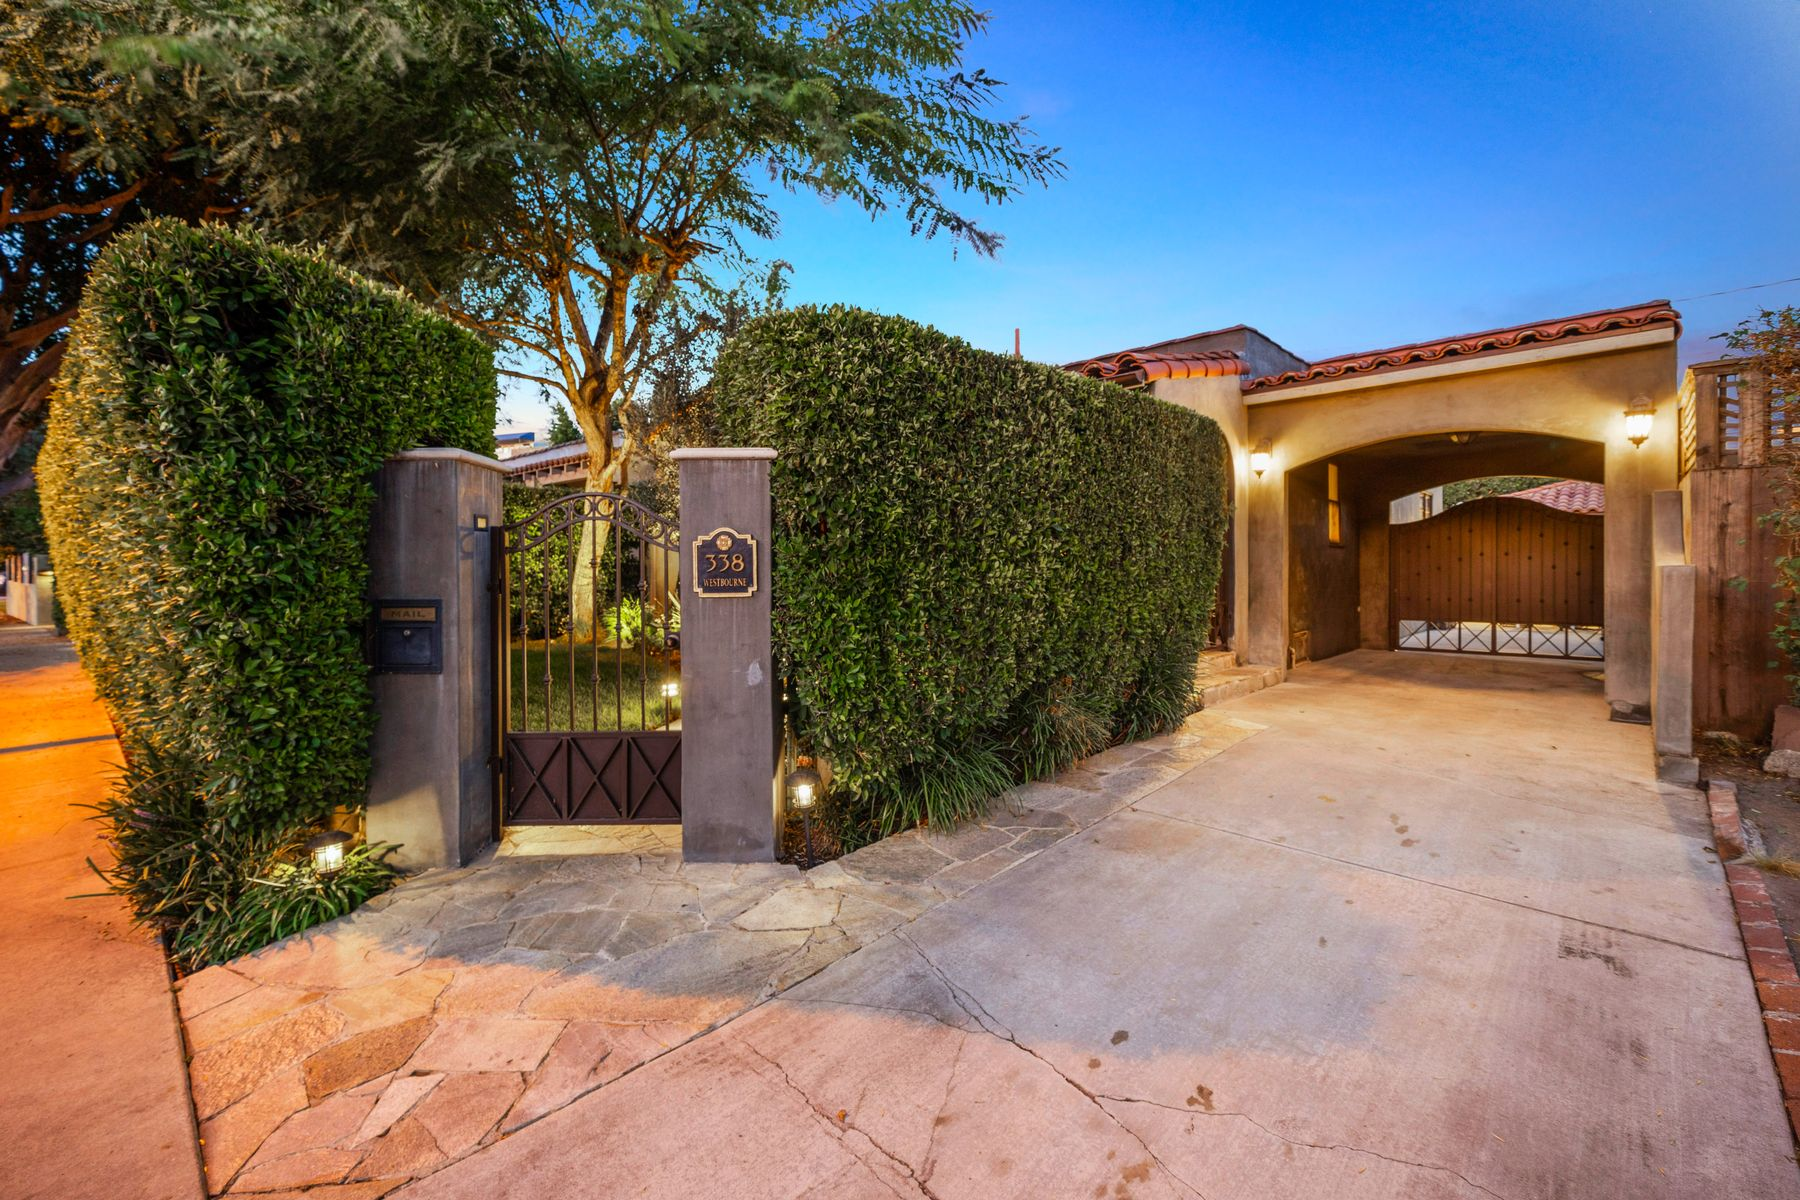 Single Family Homes for Sale at 338 Westbourne Drive West Hollywood, California 90048 United States